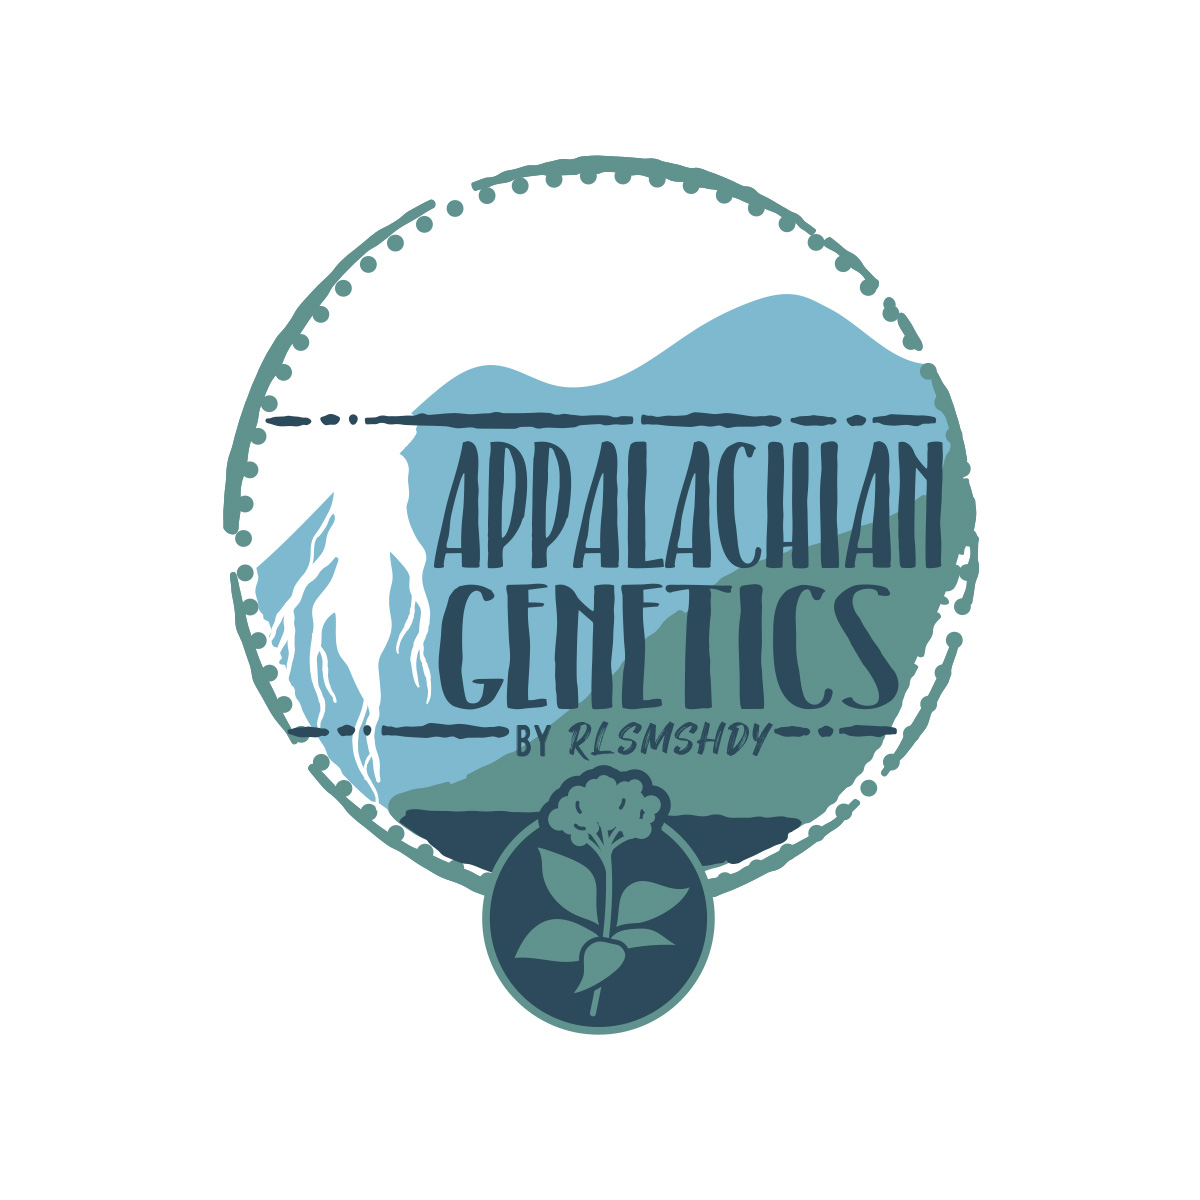 Appalachian Genetics